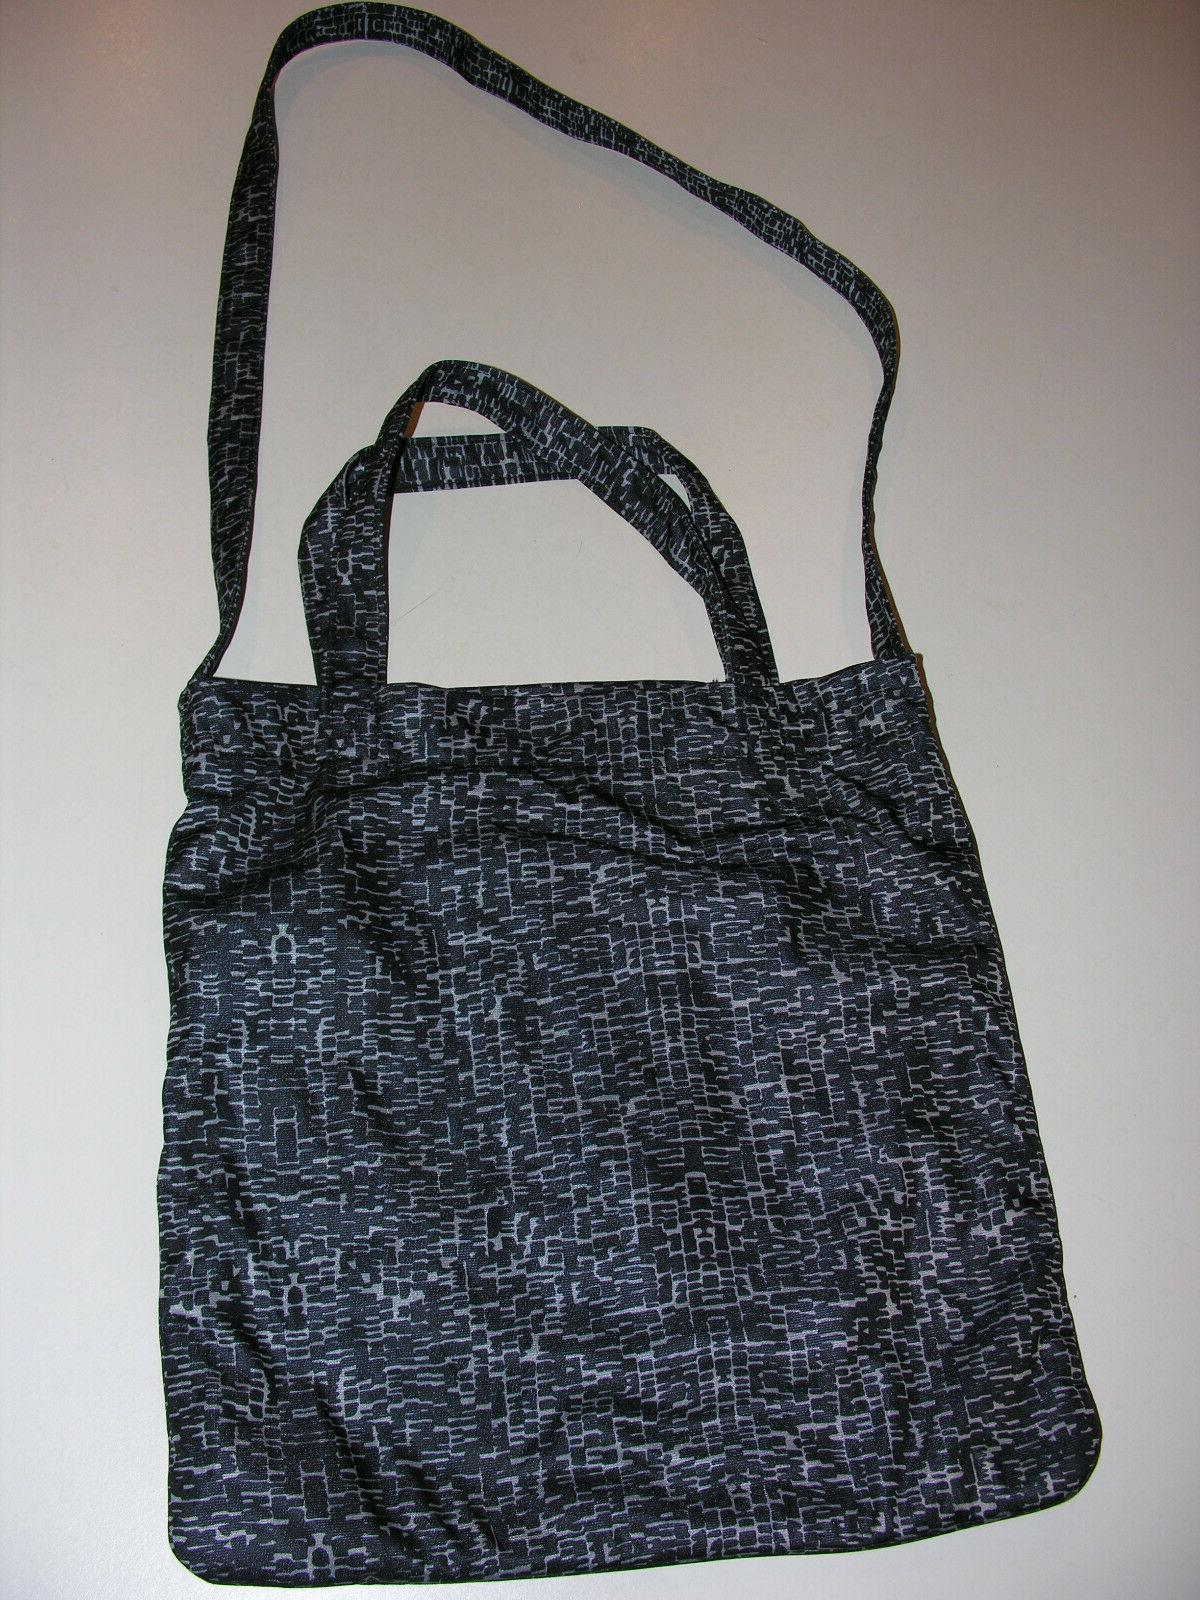 NWT Adidas Tote Shoulder Strap,Two Priced Nice!